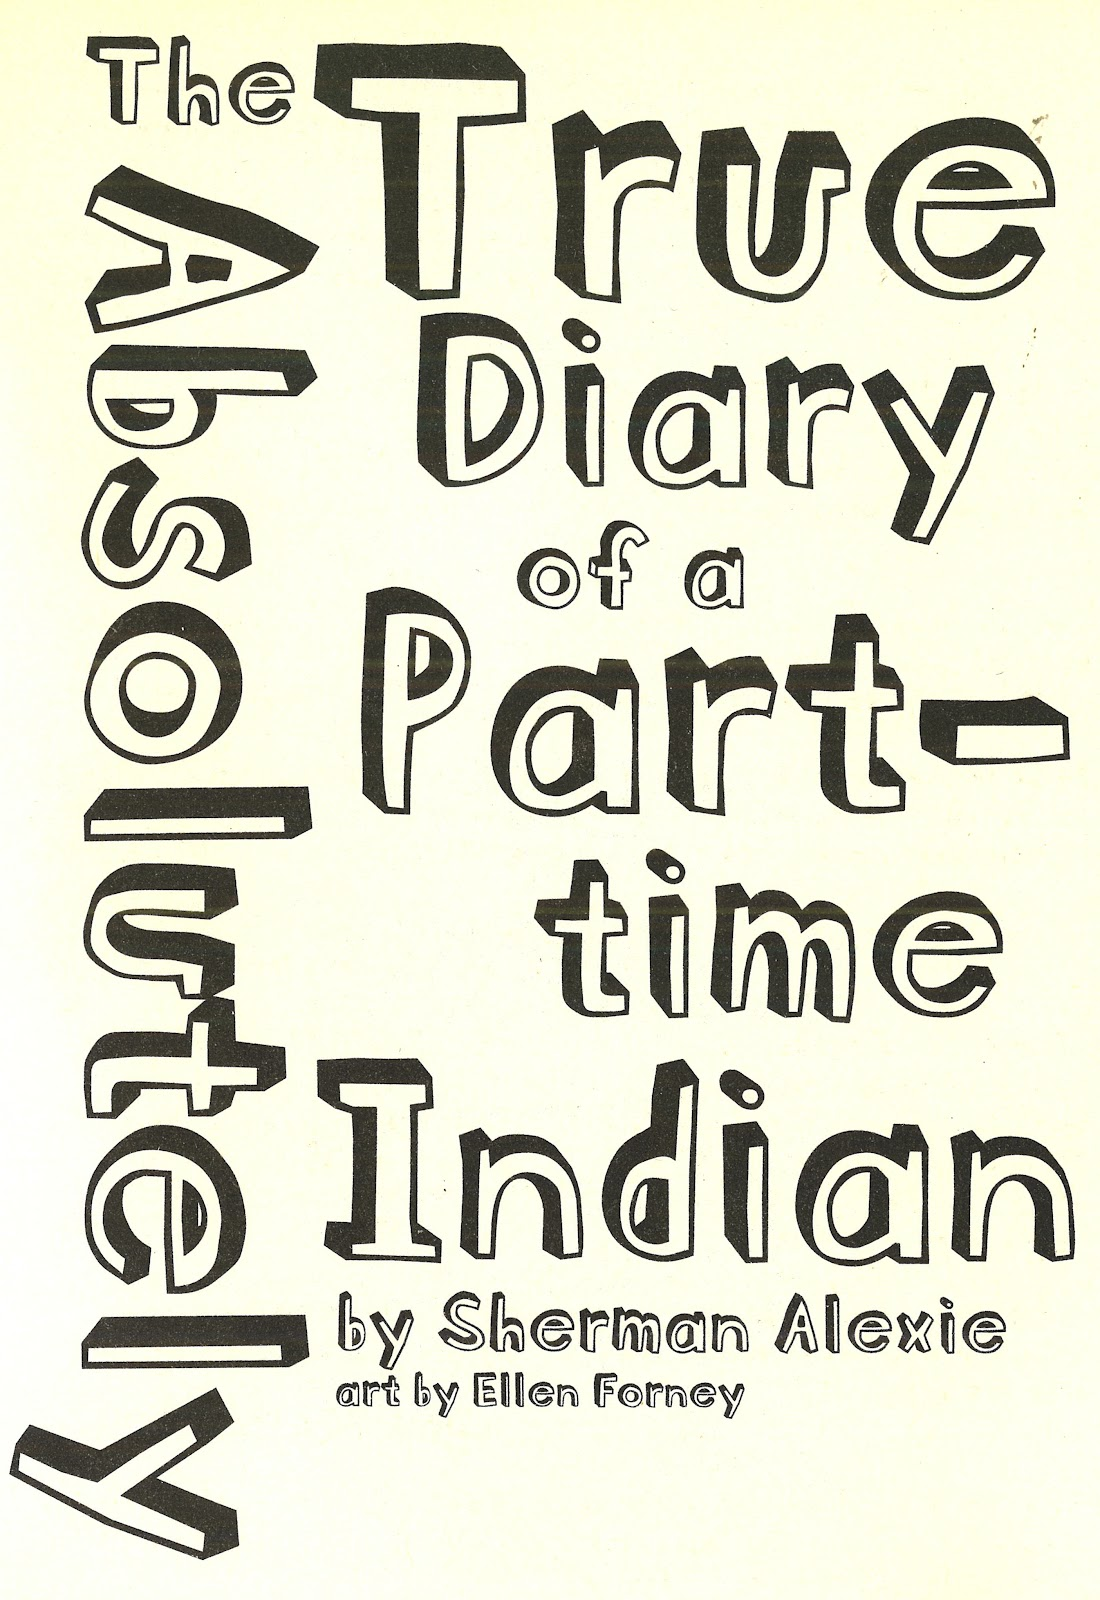 Absolutely True Diary Of A Part Time Indian Quotes Unique The Absolutely True Diary Of A Parttime Indian Quotes  Quotes Of .